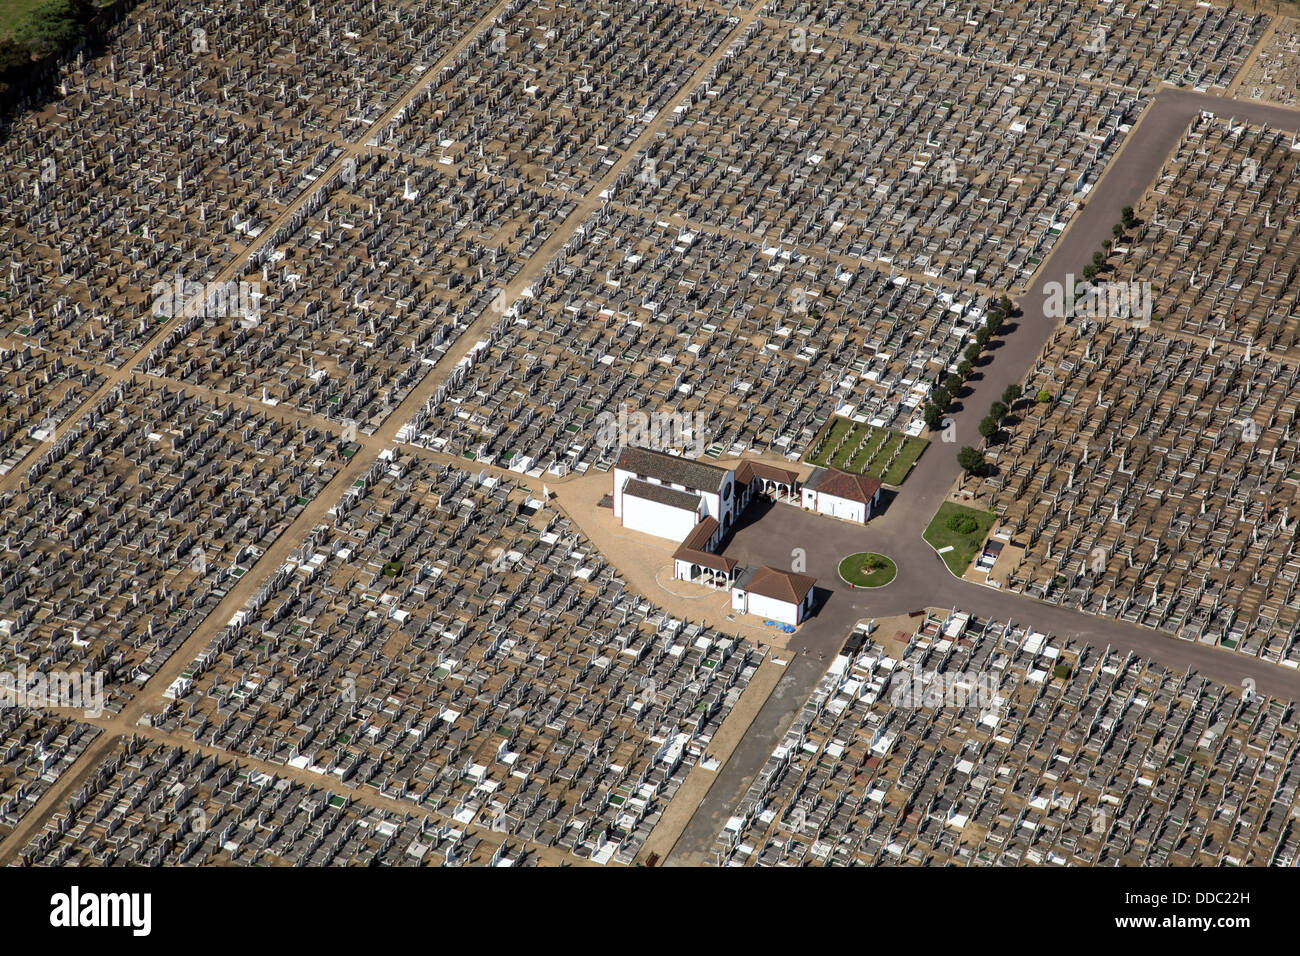 aerial view of the Jewish cemetery in East Ham, London - Stock Image